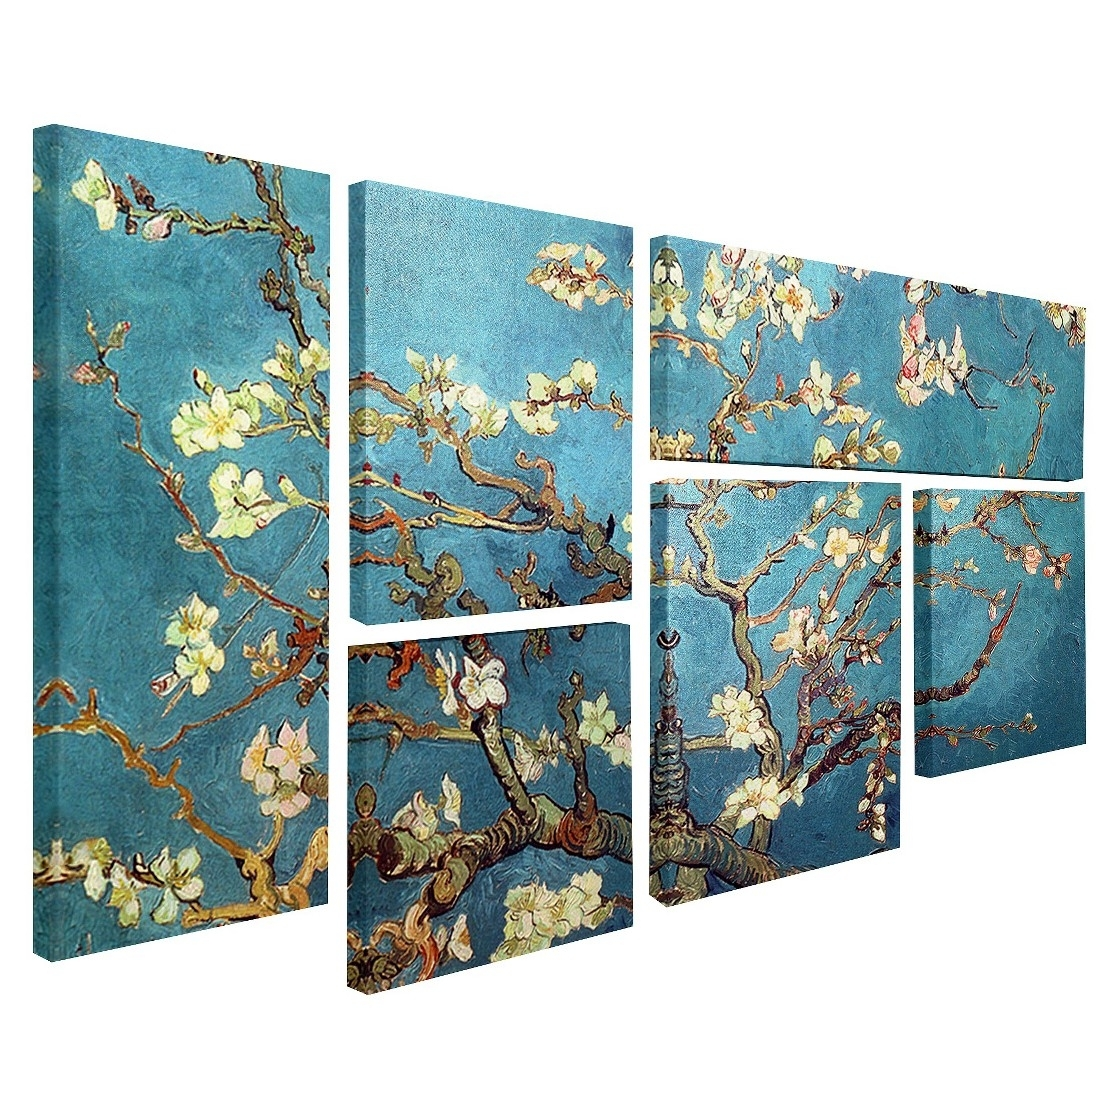 Vincent Van Gogh Multi Piece Wall Art – 'almond Blossoms', | Van Inside Current Vincent Van Gogh Multi Piece Wall Art (Gallery 1 of 20)